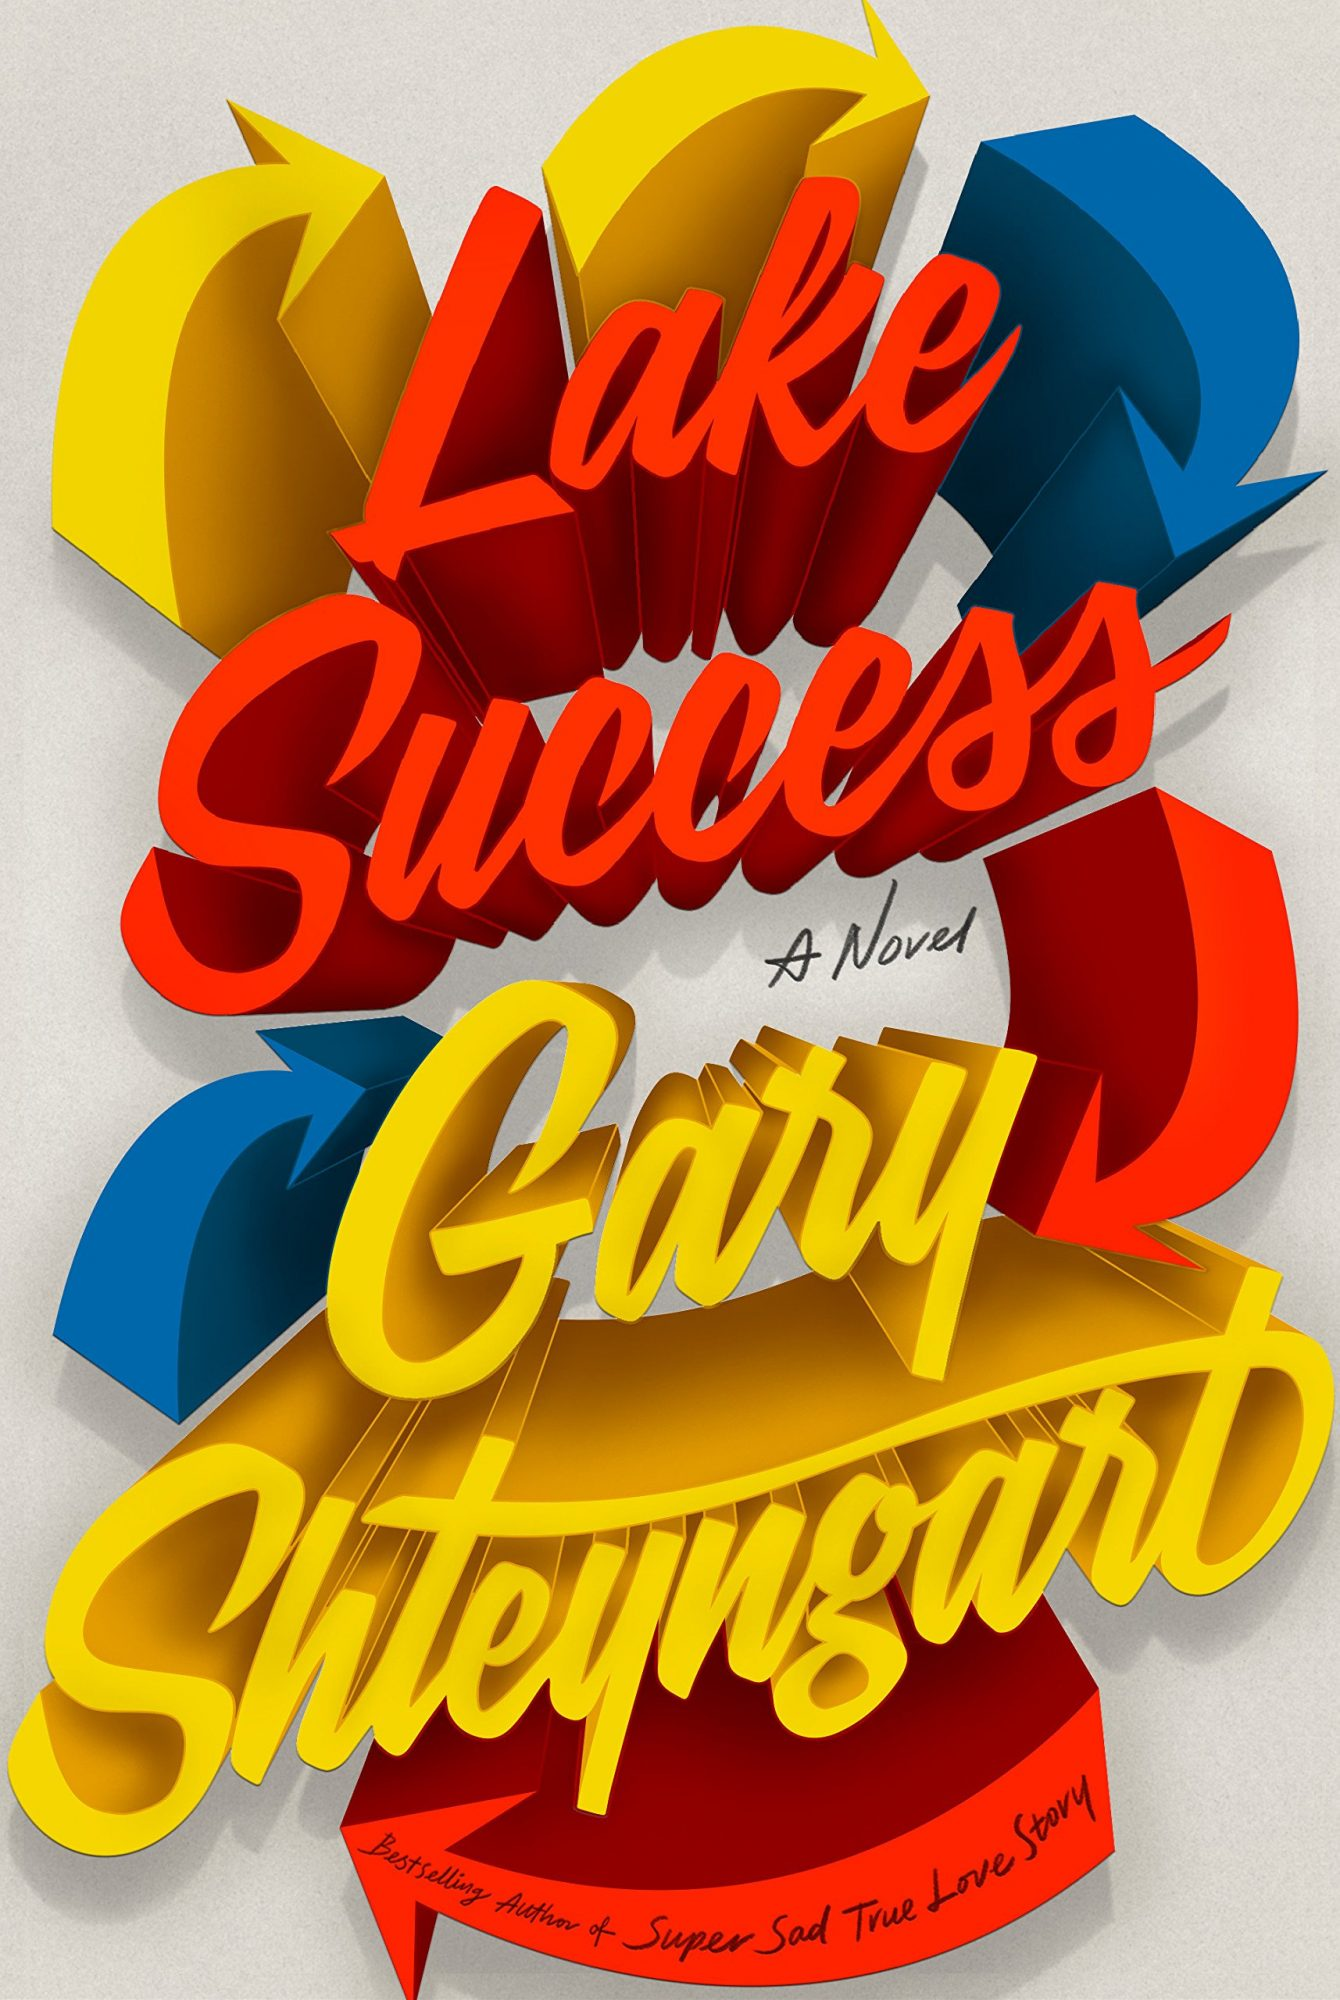 Lake Success: A Novel by Gary Shteyngart